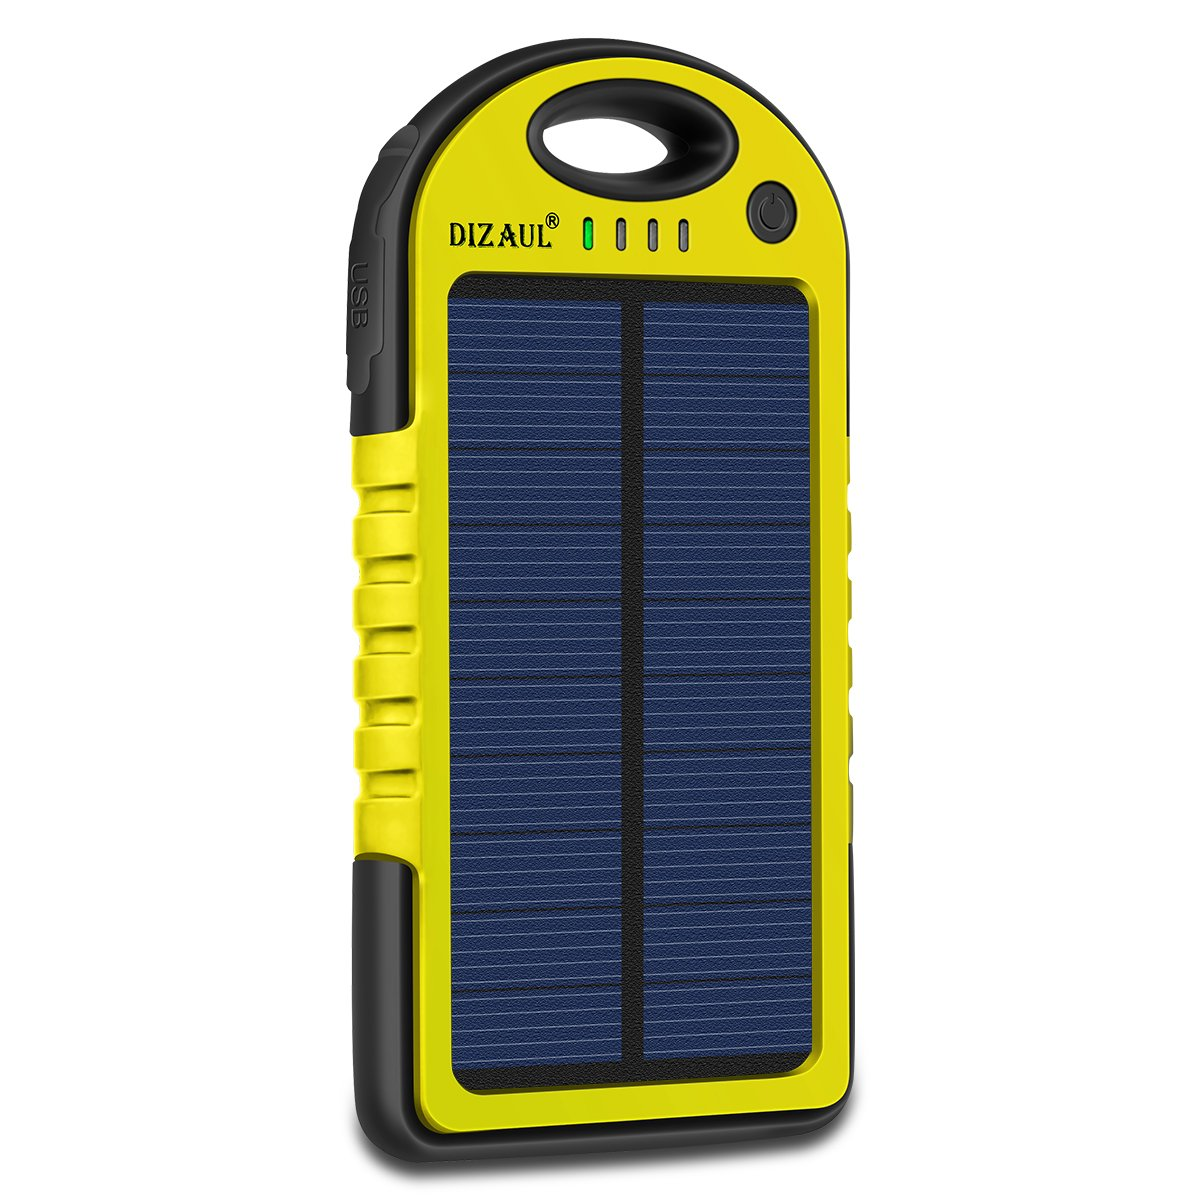 Solar Charger, 24000mAh Portable Solar Power Bank Faster Recharged in 5.5 Hours &USB C Input, 18W Type C PD Output for Nintendo Switch, MacBook, Laptop, Tablet, iPhone and Android